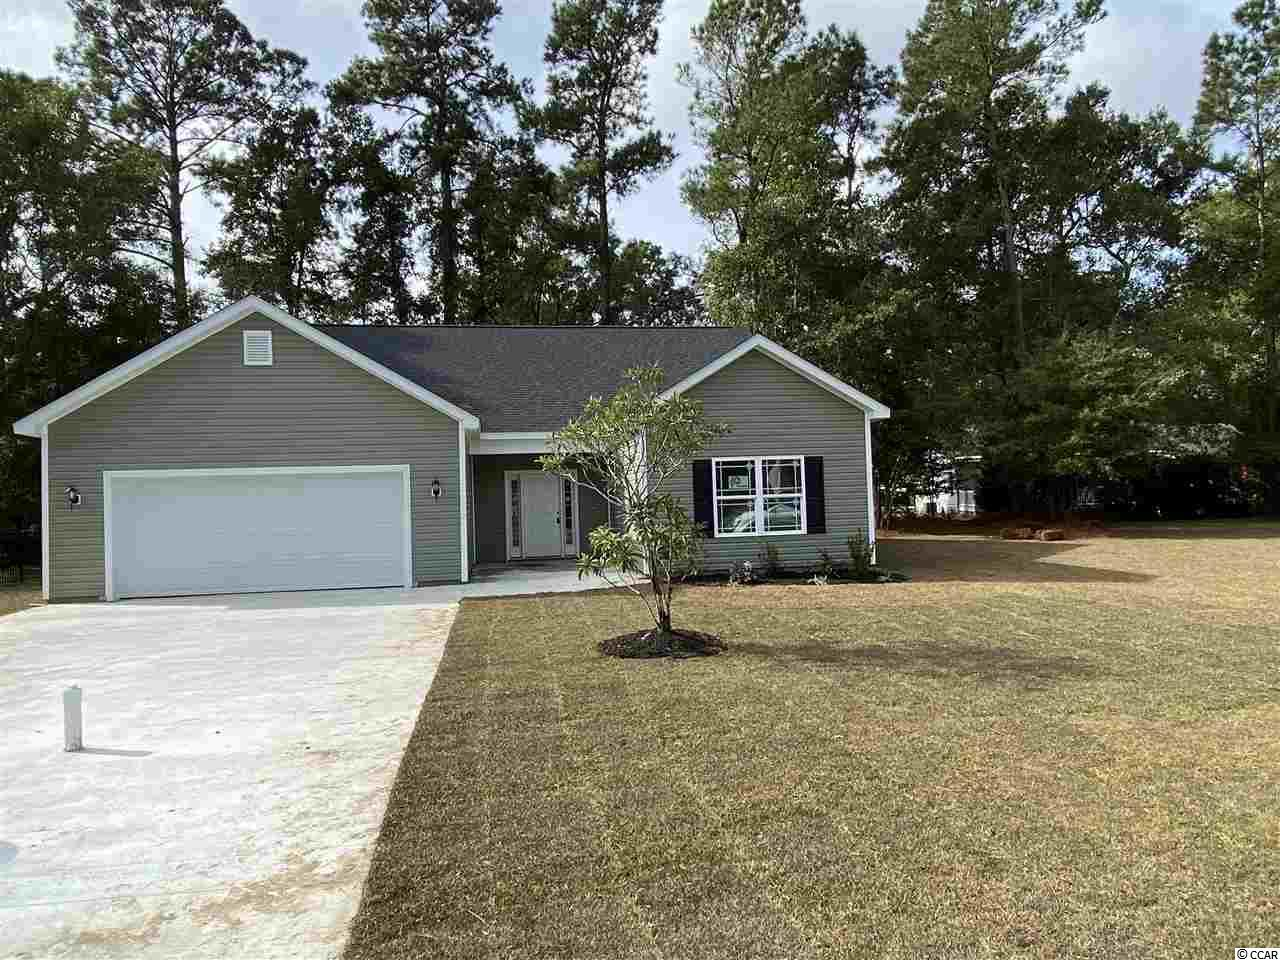 NO HOA! Have all your toys(boat/RV/Work Truck/ETC) in your driveway or parked on the lot. NEWLY CONSTRUCTED Home rests on a quiet cul de sac street for all the privacy one would ever want. Lot is just under a 1/2 acre and there is room to add another garage/shed/office. This spacious floor plan offers an open and airy floor plan and great for entertaining. Kitchen offers hard surface counter tops, stainless steel appliances and a center island. All 3 bedrooms are spacious and comfortable. Great Room is oversized with a Cathedral ceiling and open and airy to the rest of the home. This is a must see, call today for details.